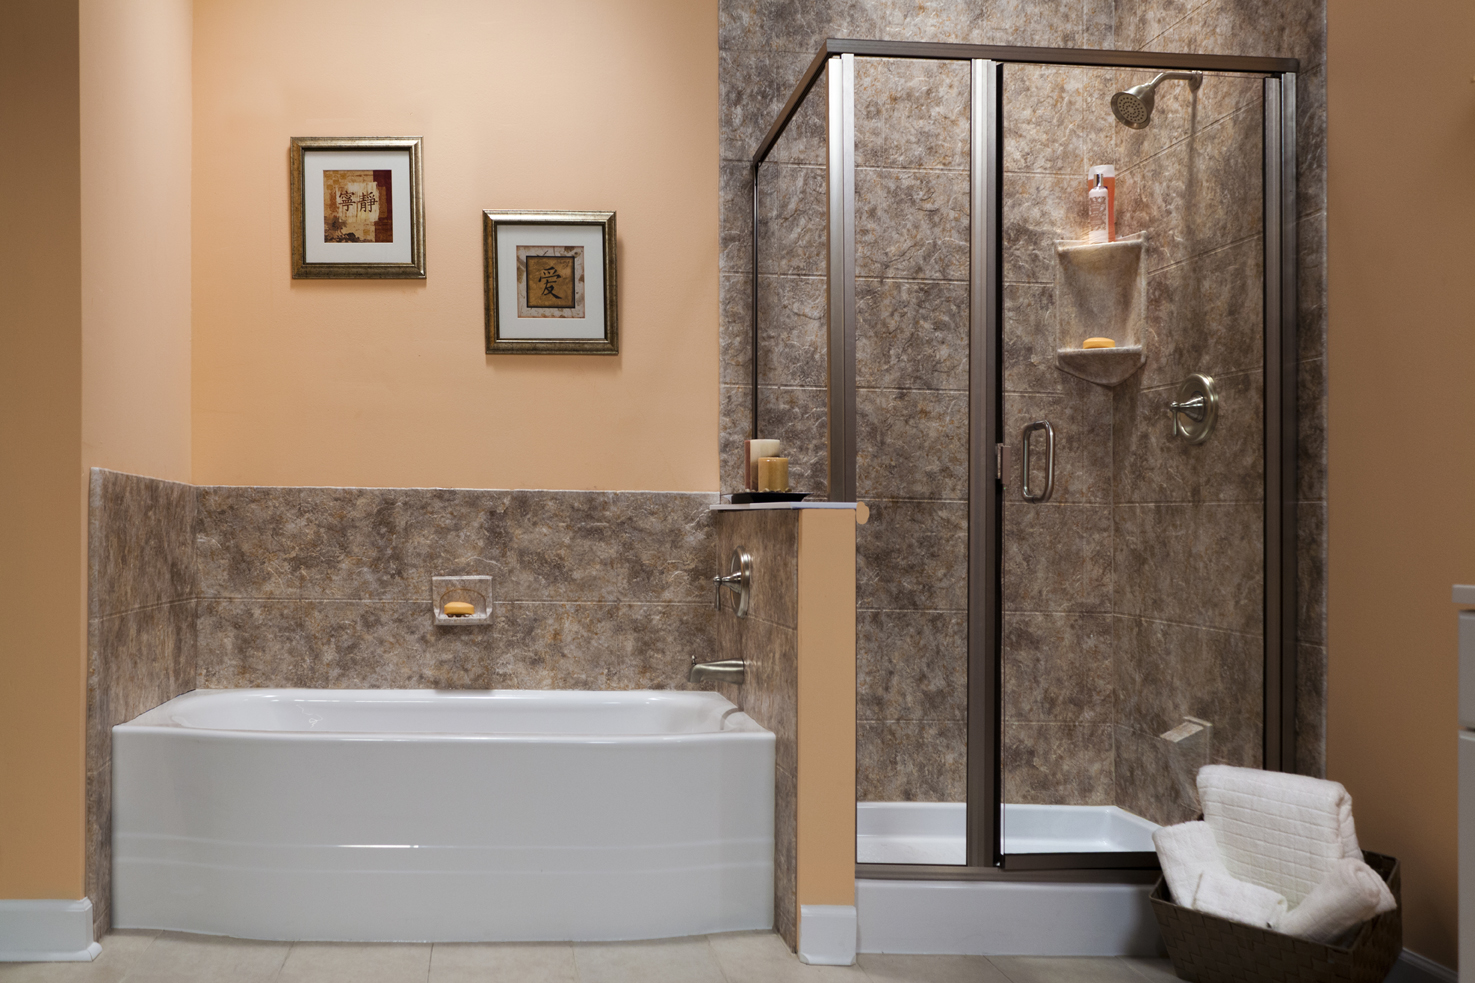 bathroom remodeling is easy and affordable with tub liners shower